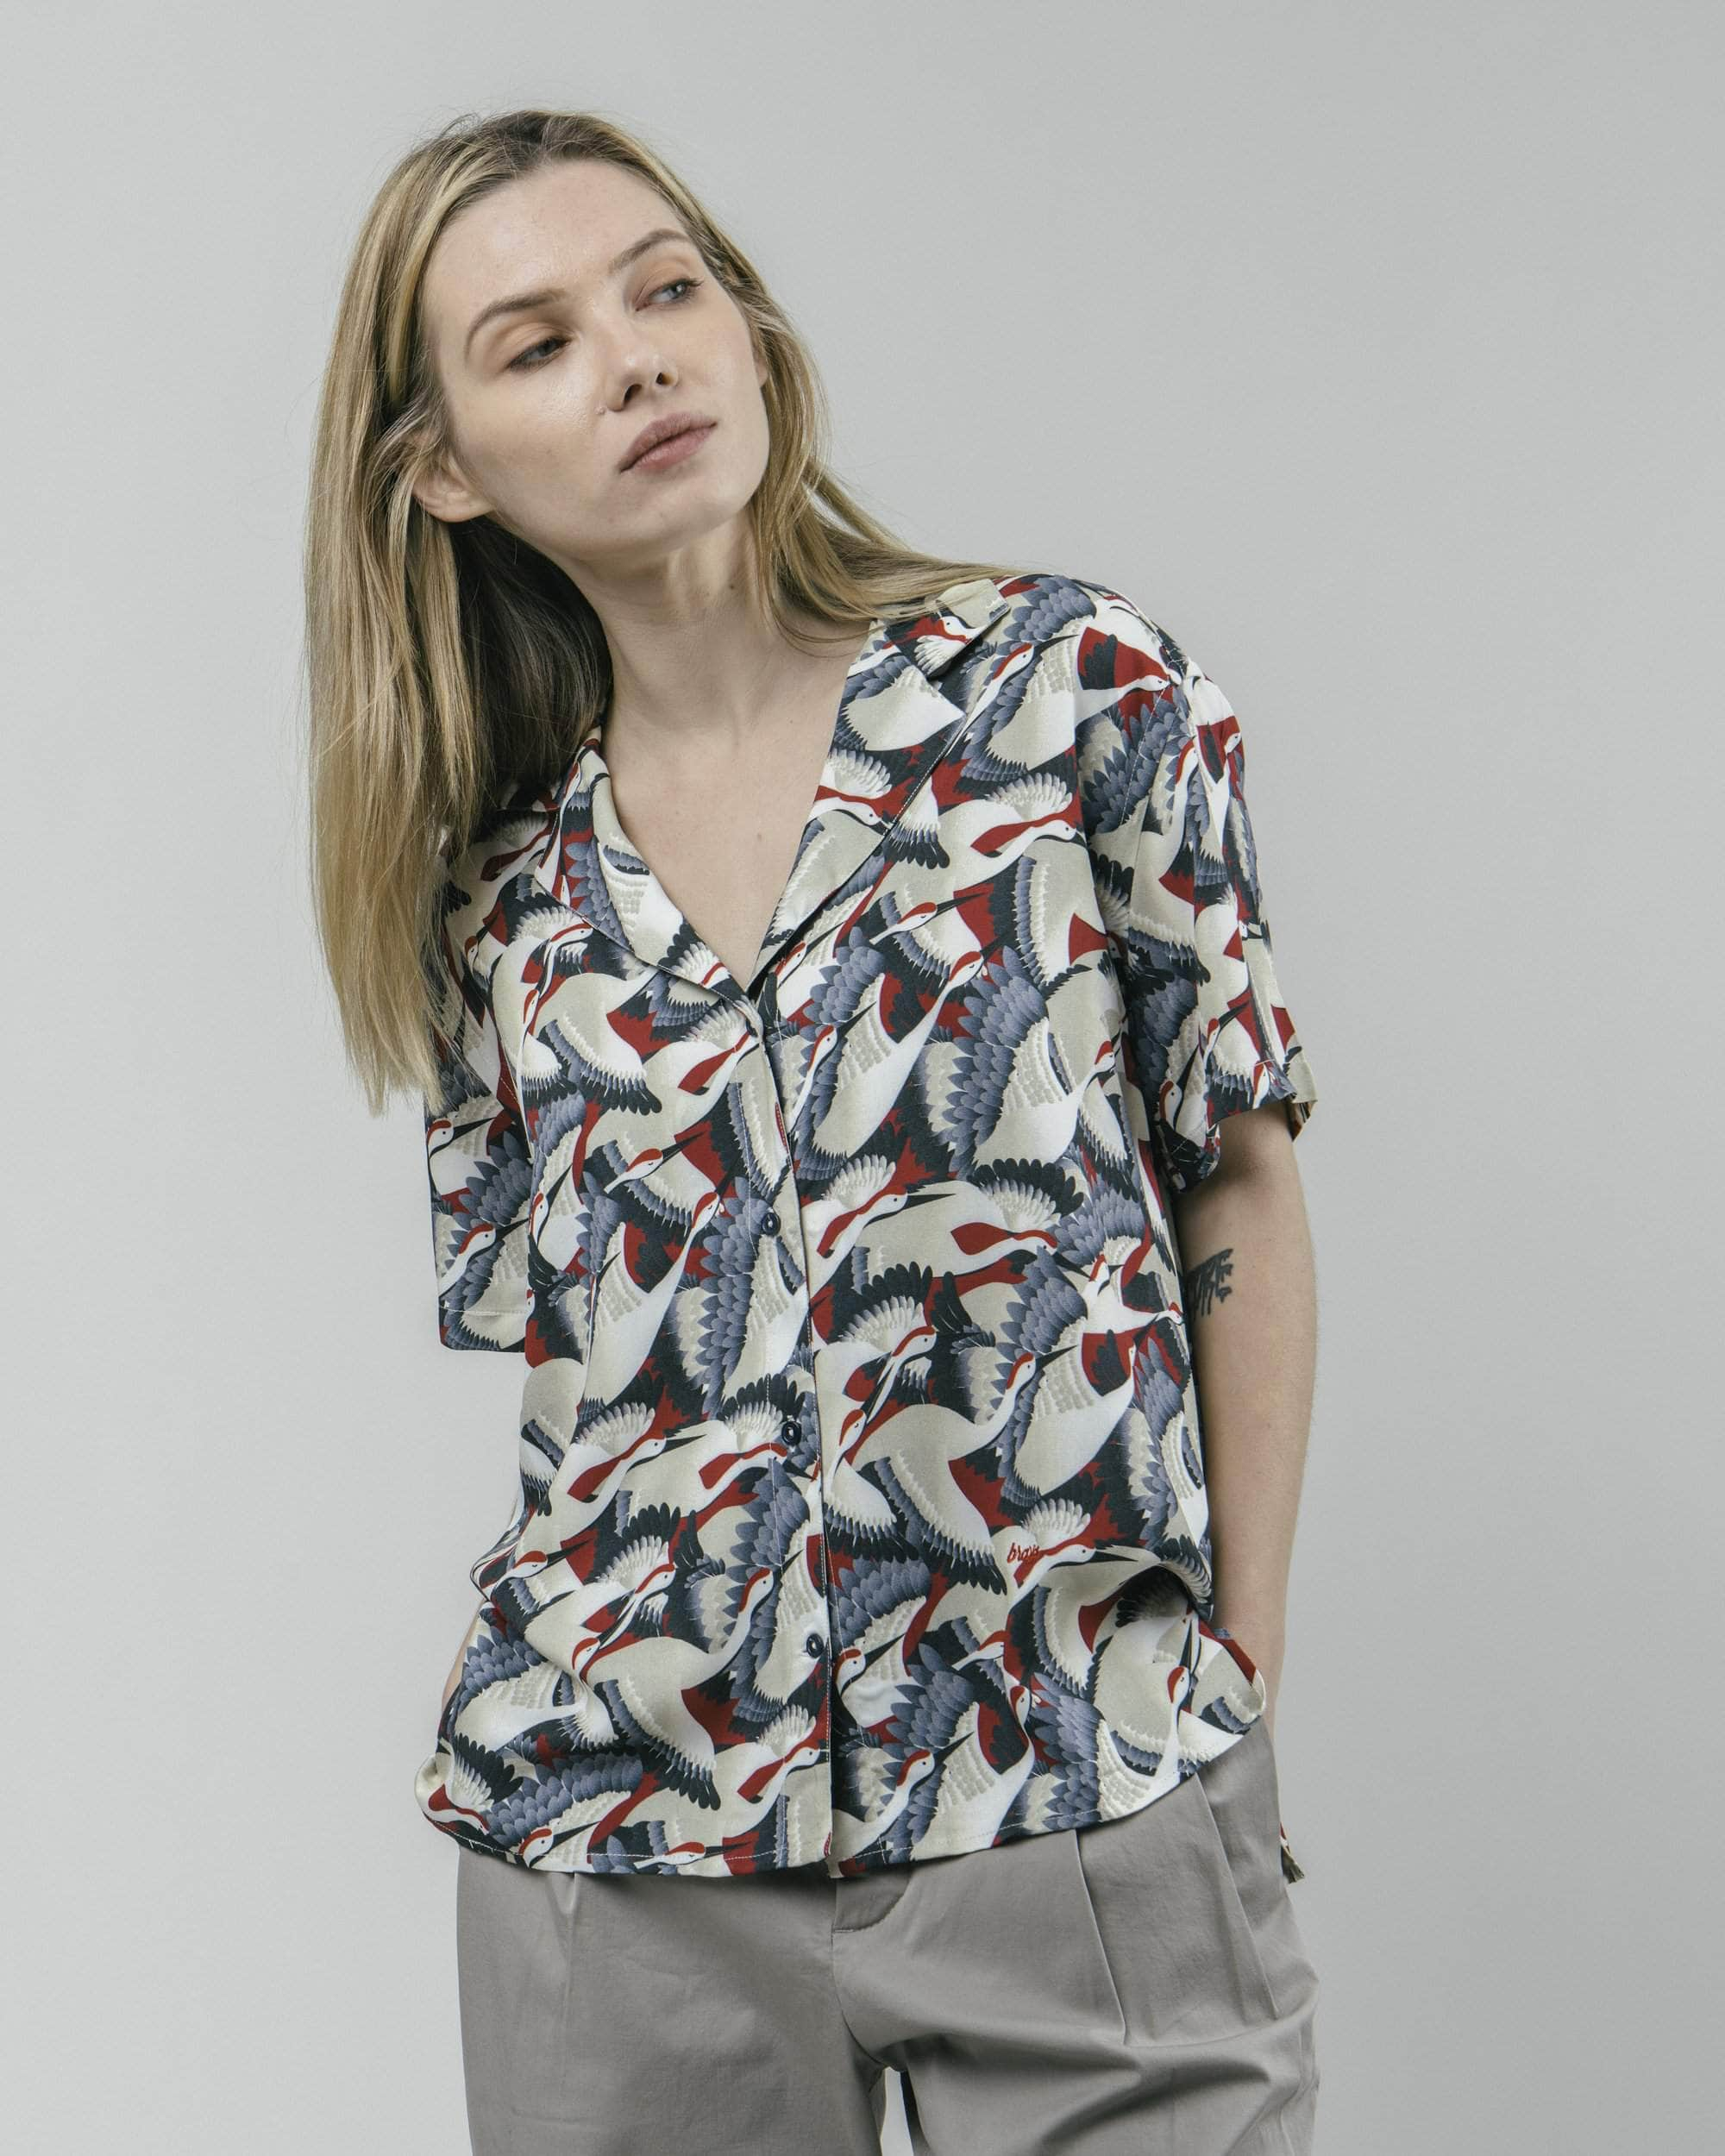 Blusa Aloha Crane for Luck